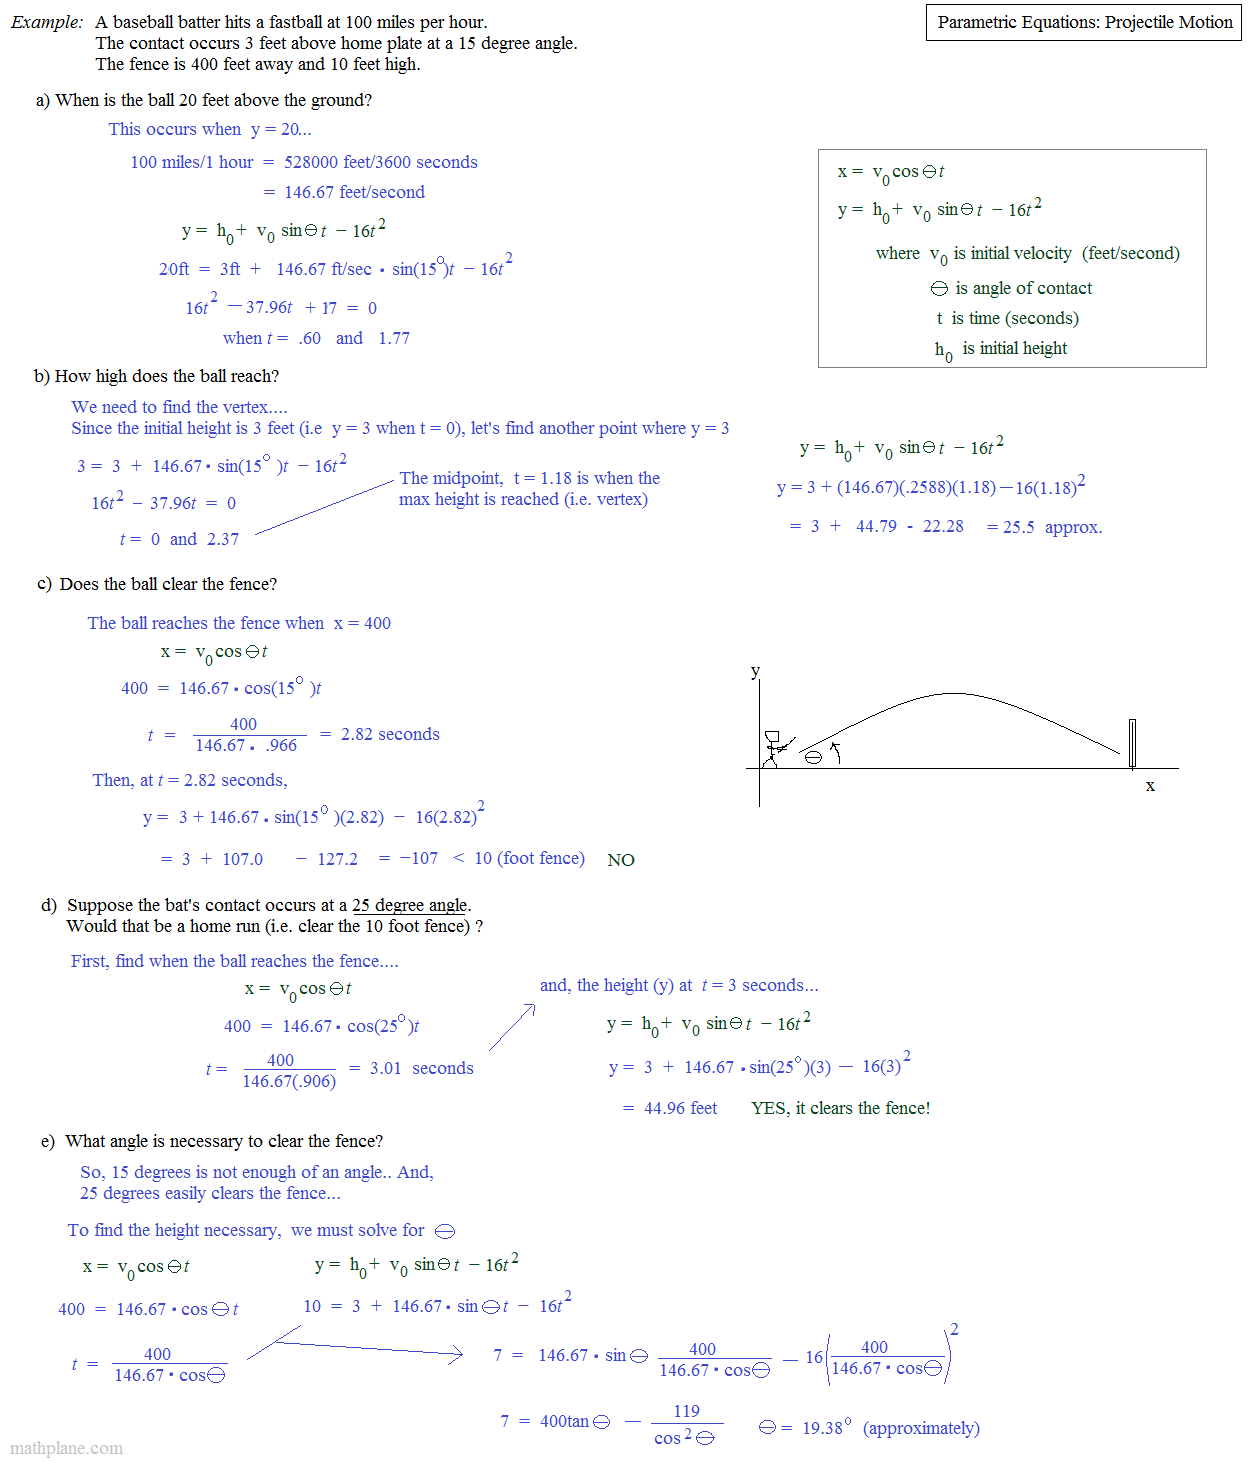 Parametric Equations Word Problems Worksheet With Answers